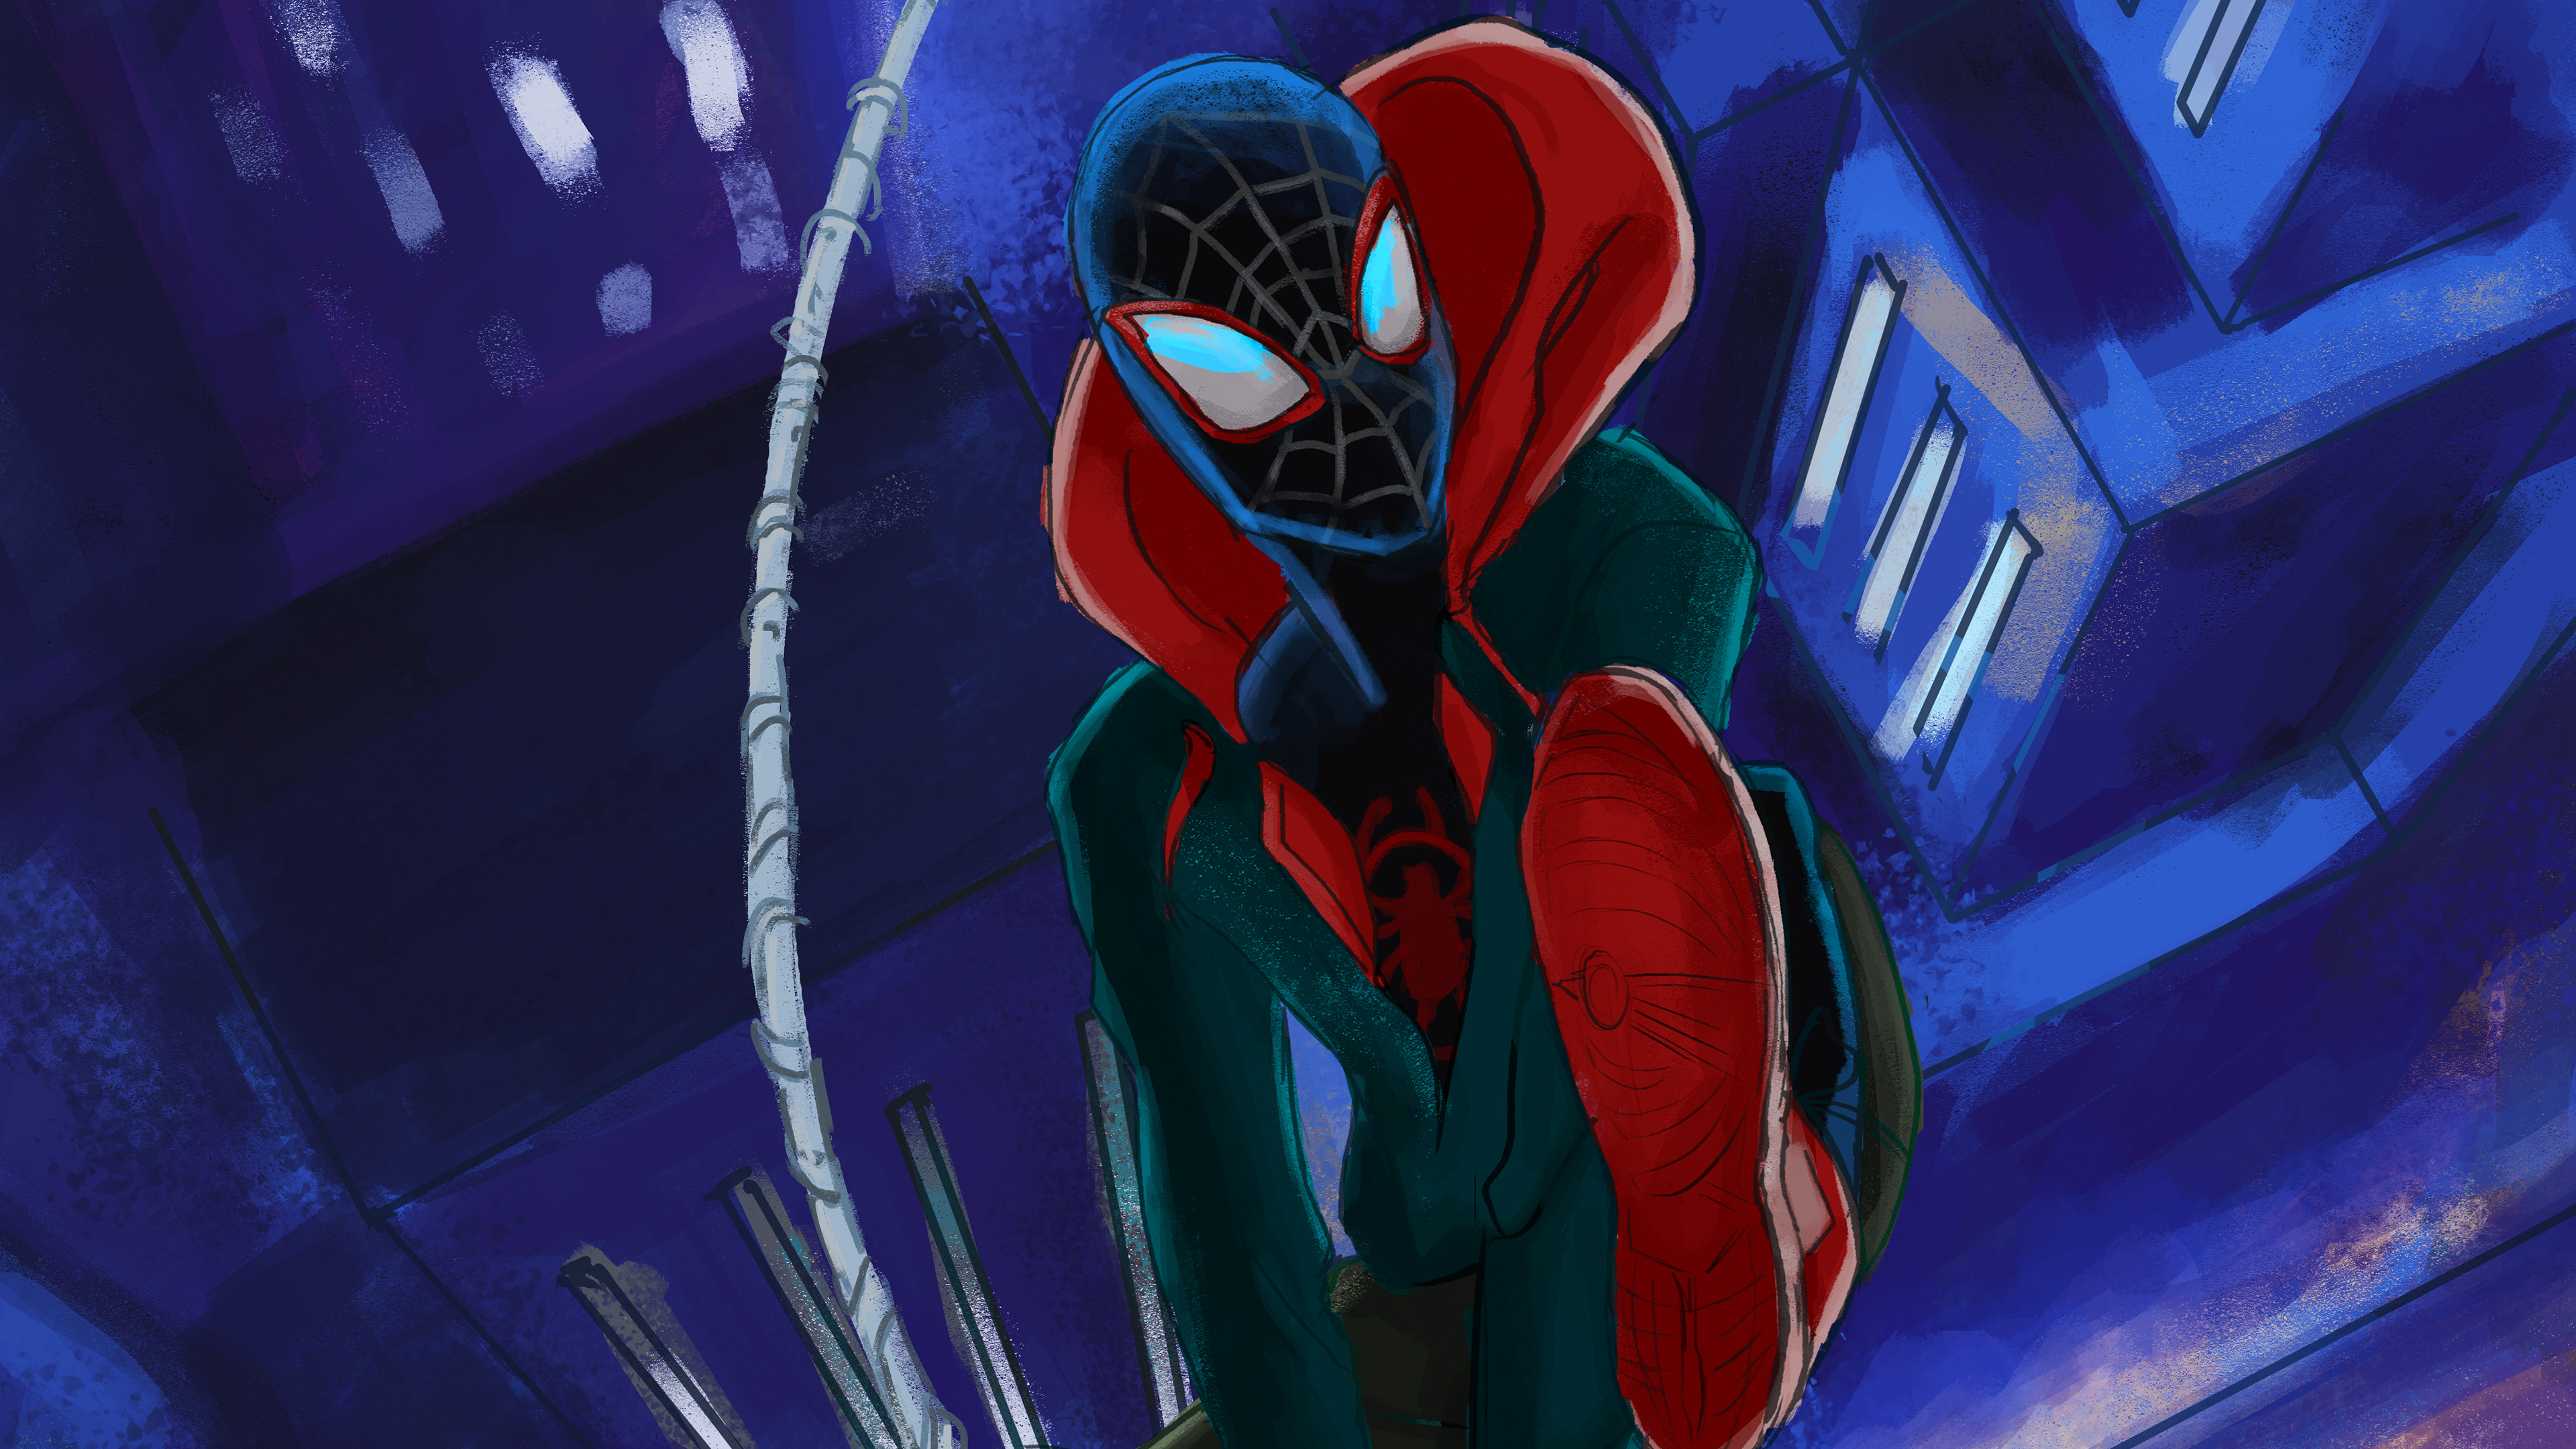 Wallpaper 4k Spiderman Miles Morales Art 4k New 4k Wallpapers